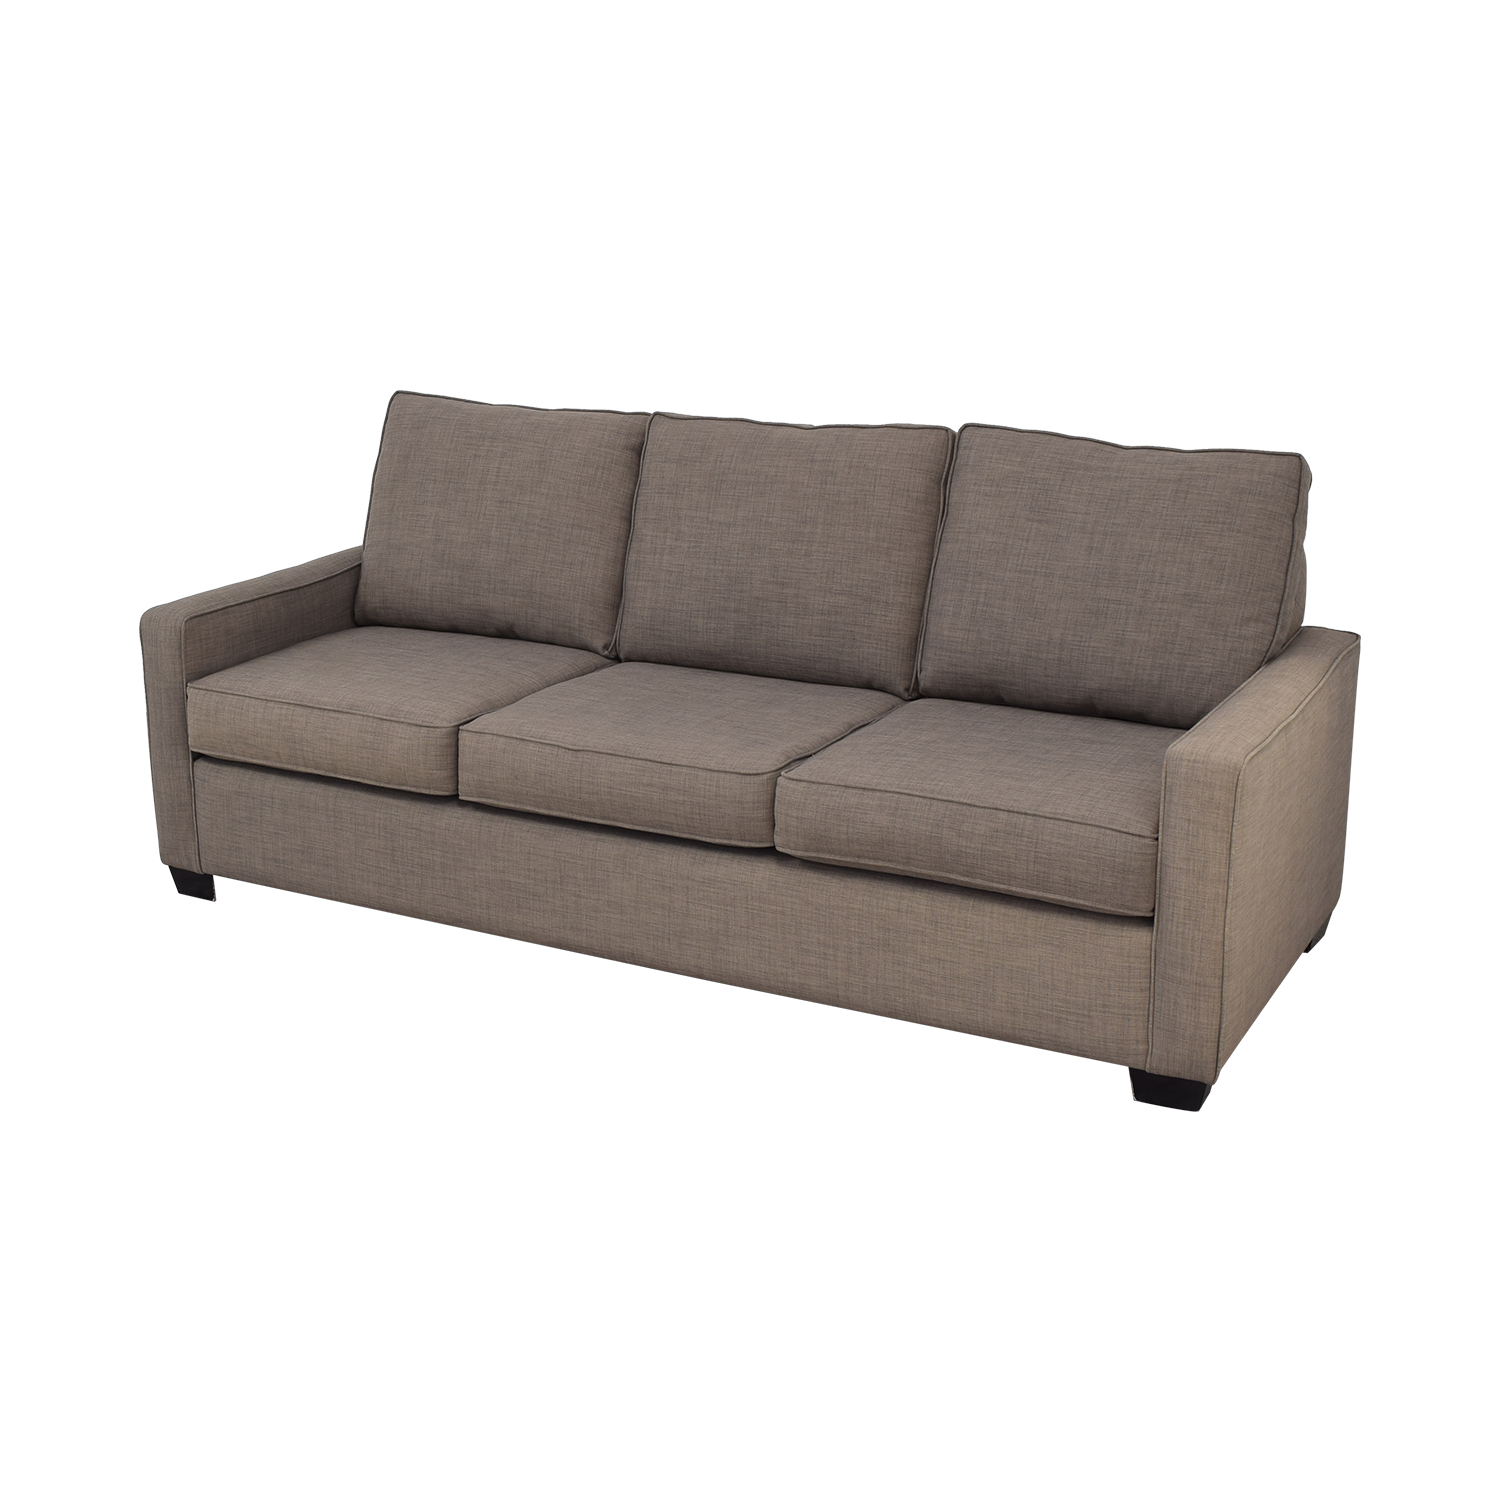 A1 Design Sofa price